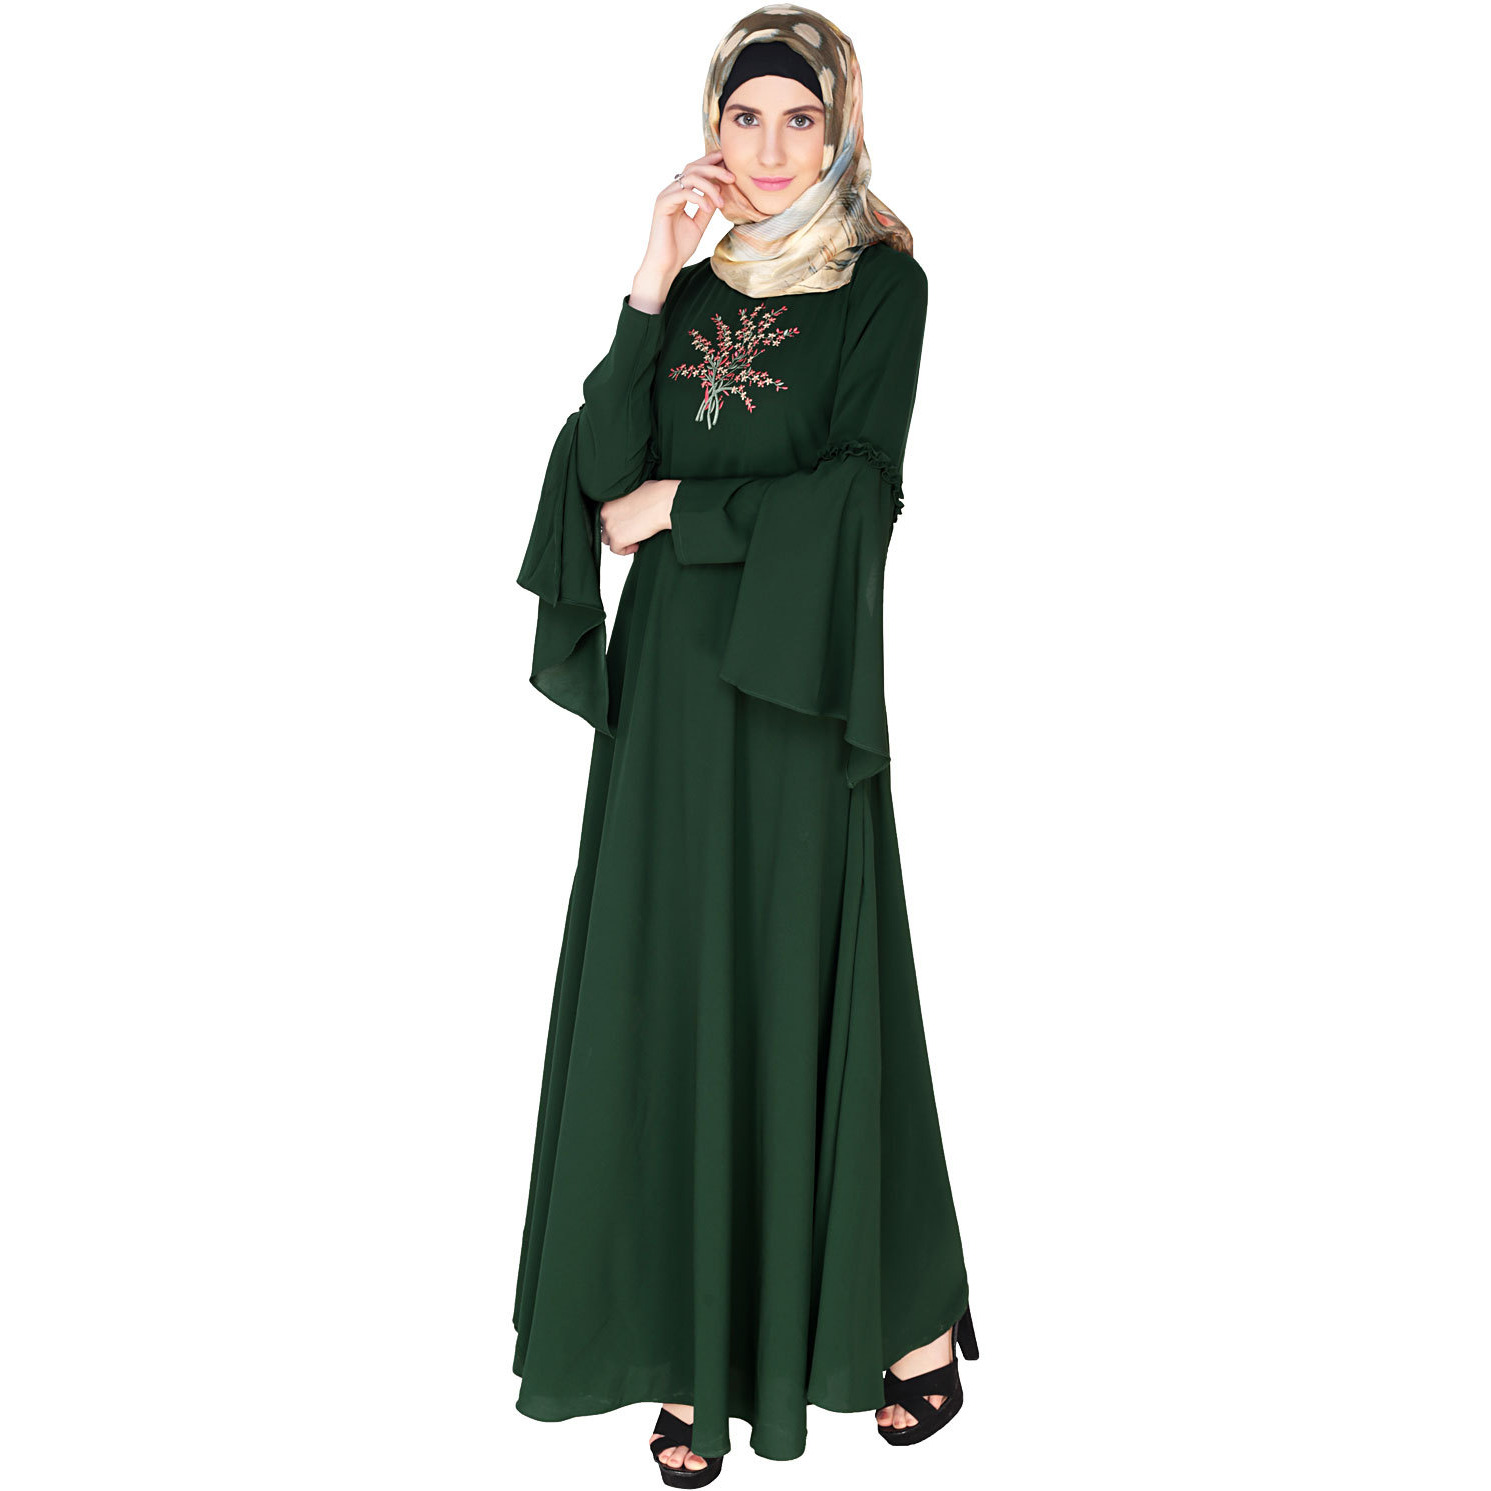 03f6d346f75 Where To Buy Modest Semi Formal Dresses